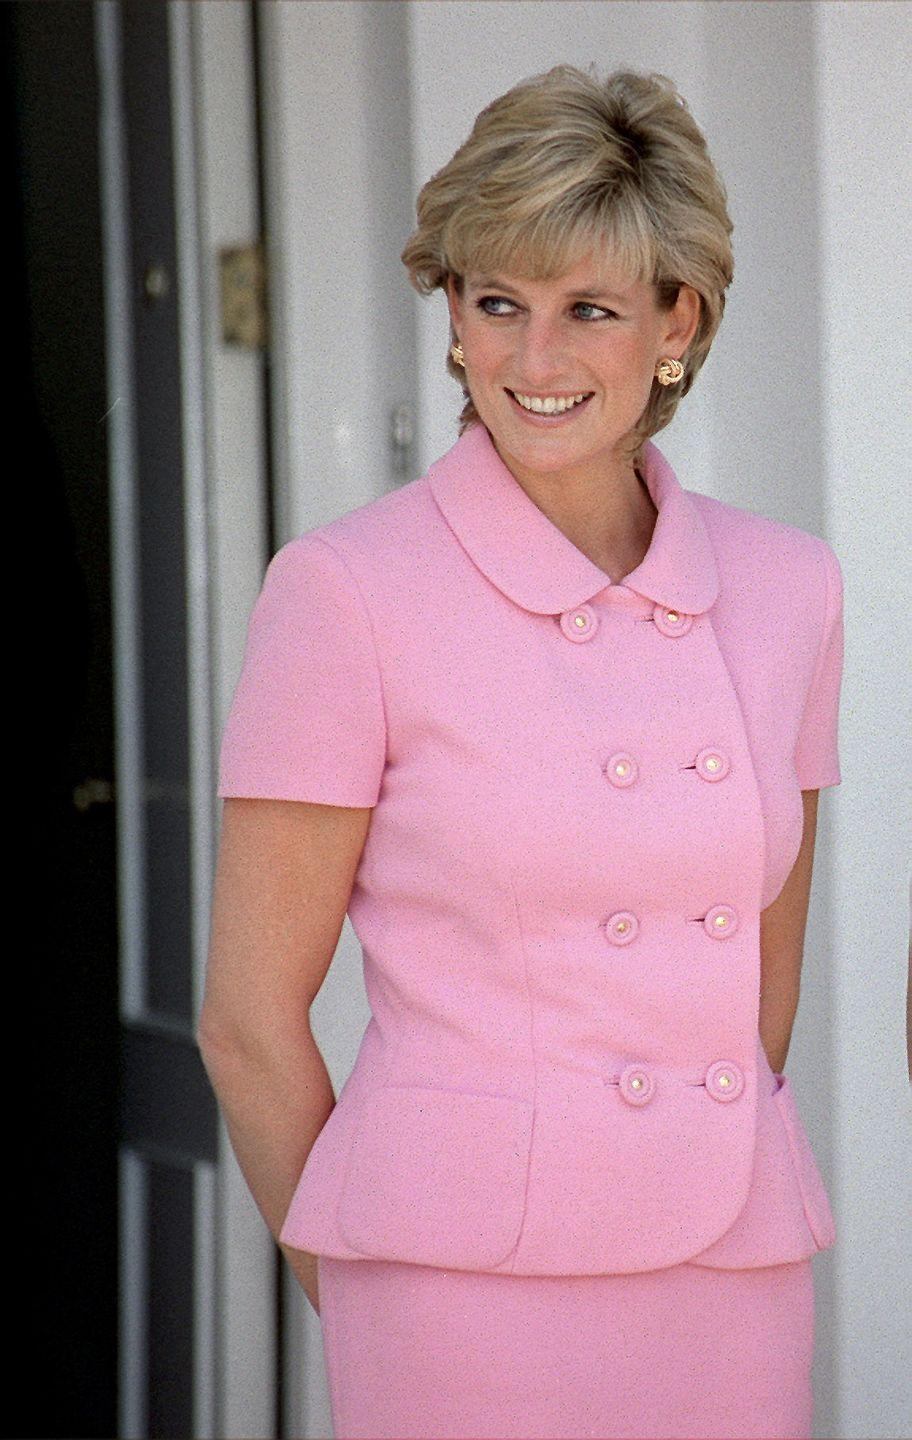 """<p>Princess Diana complemented her bubblegum pink skirt suit with a pair of gold knot earrings on a trip to Argentina in November 1995. </p><p><strong>More</strong>: <a href=""""https://www.townandcountrymag.com/style/fashion-trends/g22617779/princess-diana-fashion/"""" rel=""""nofollow noopener"""" target=""""_blank"""" data-ylk=""""slk:Princess Diana's Most Iconic Style Moments"""" class=""""link rapid-noclick-resp"""">Princess Diana's Most Iconic Style Moments</a></p>"""